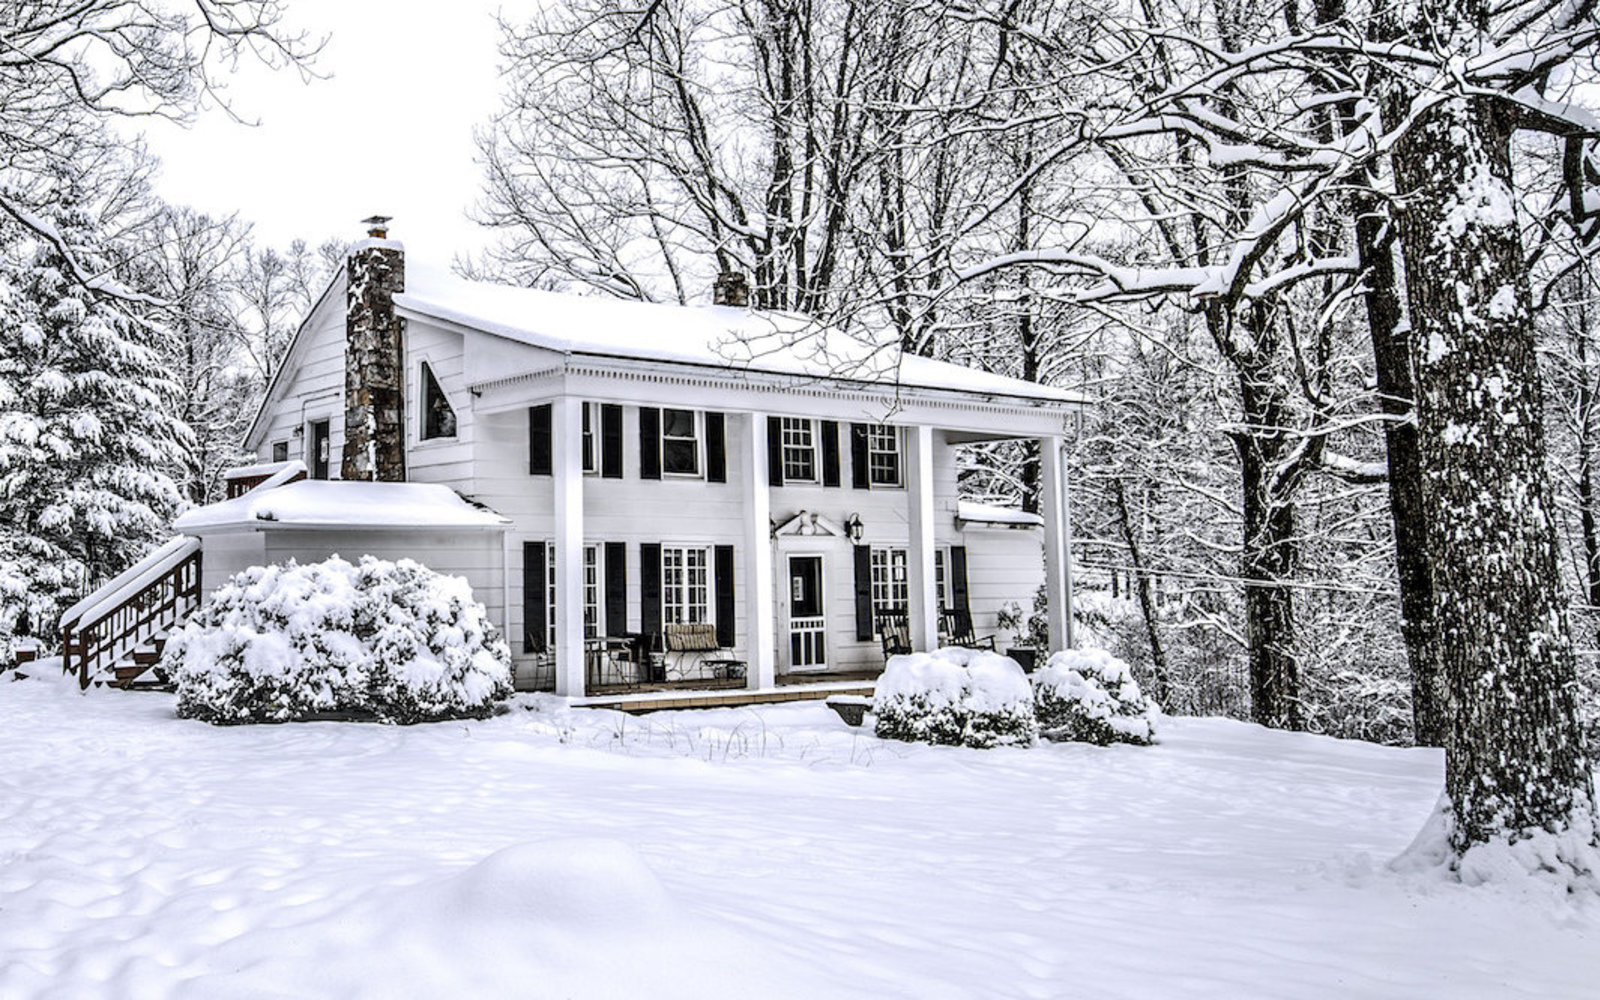 House in snowy landscape